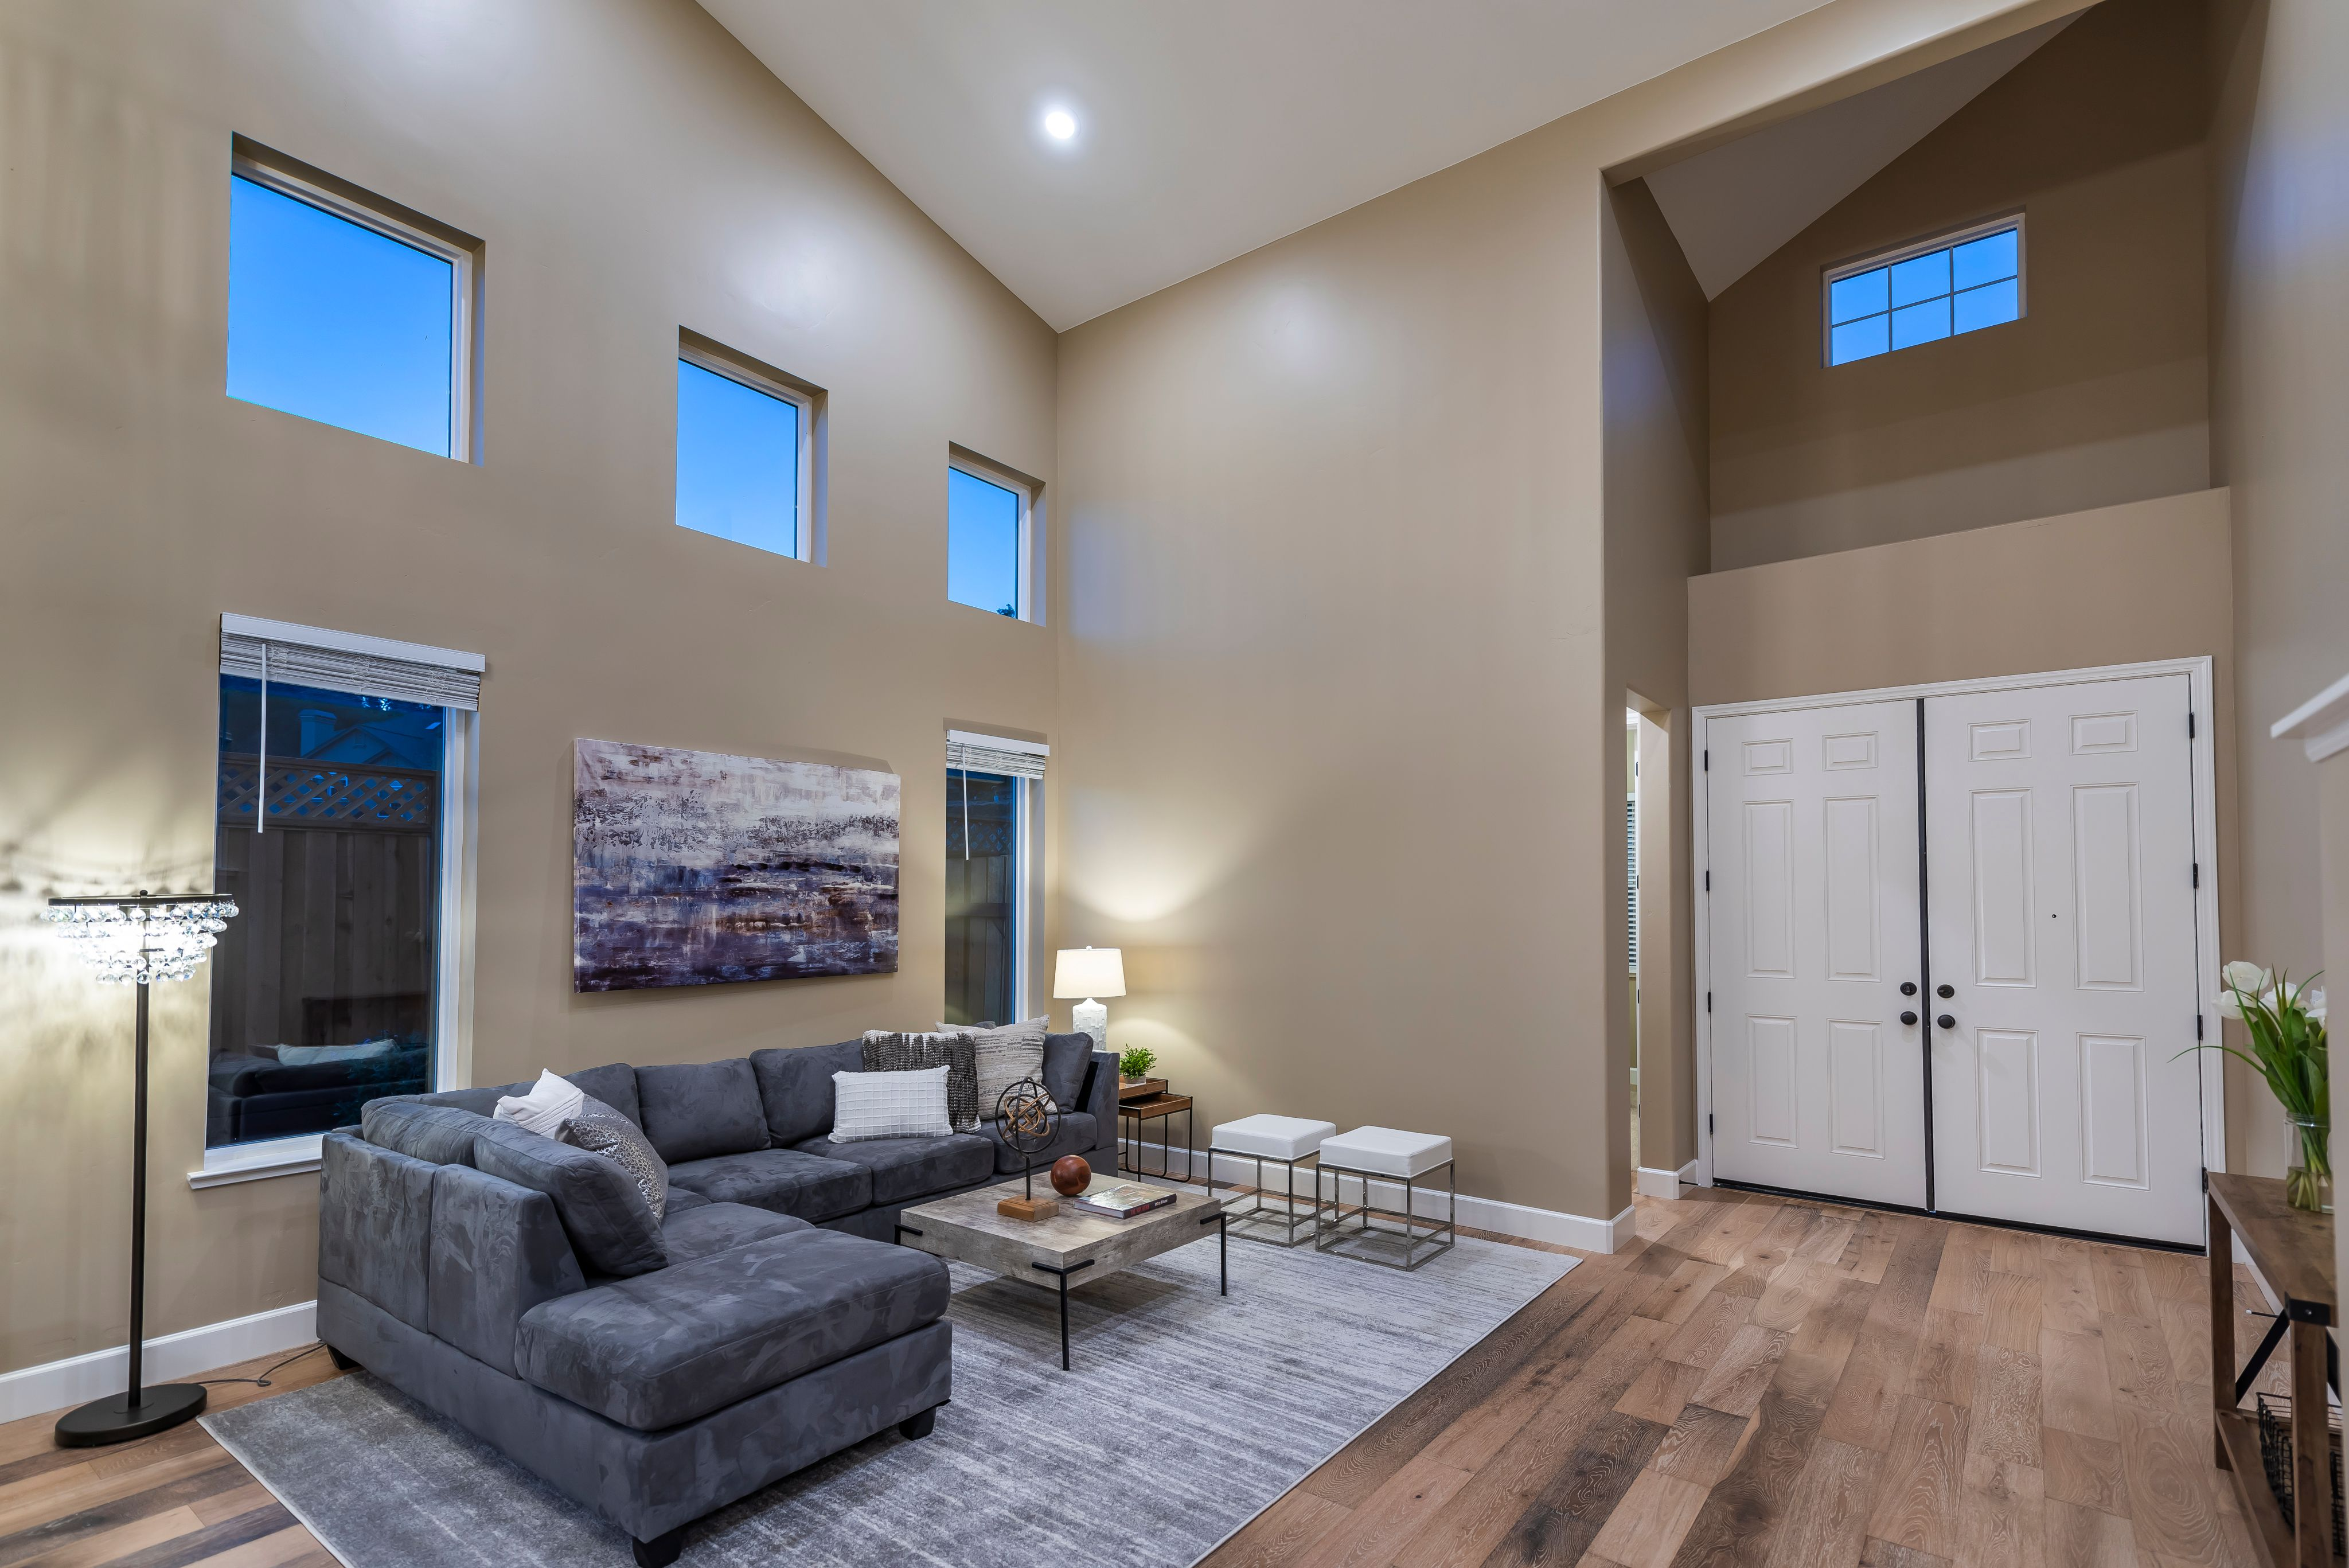 Living Area featured in the 3668 Fir Ridge Drive By Silvermark Luxury Homes in Santa Rosa, CA